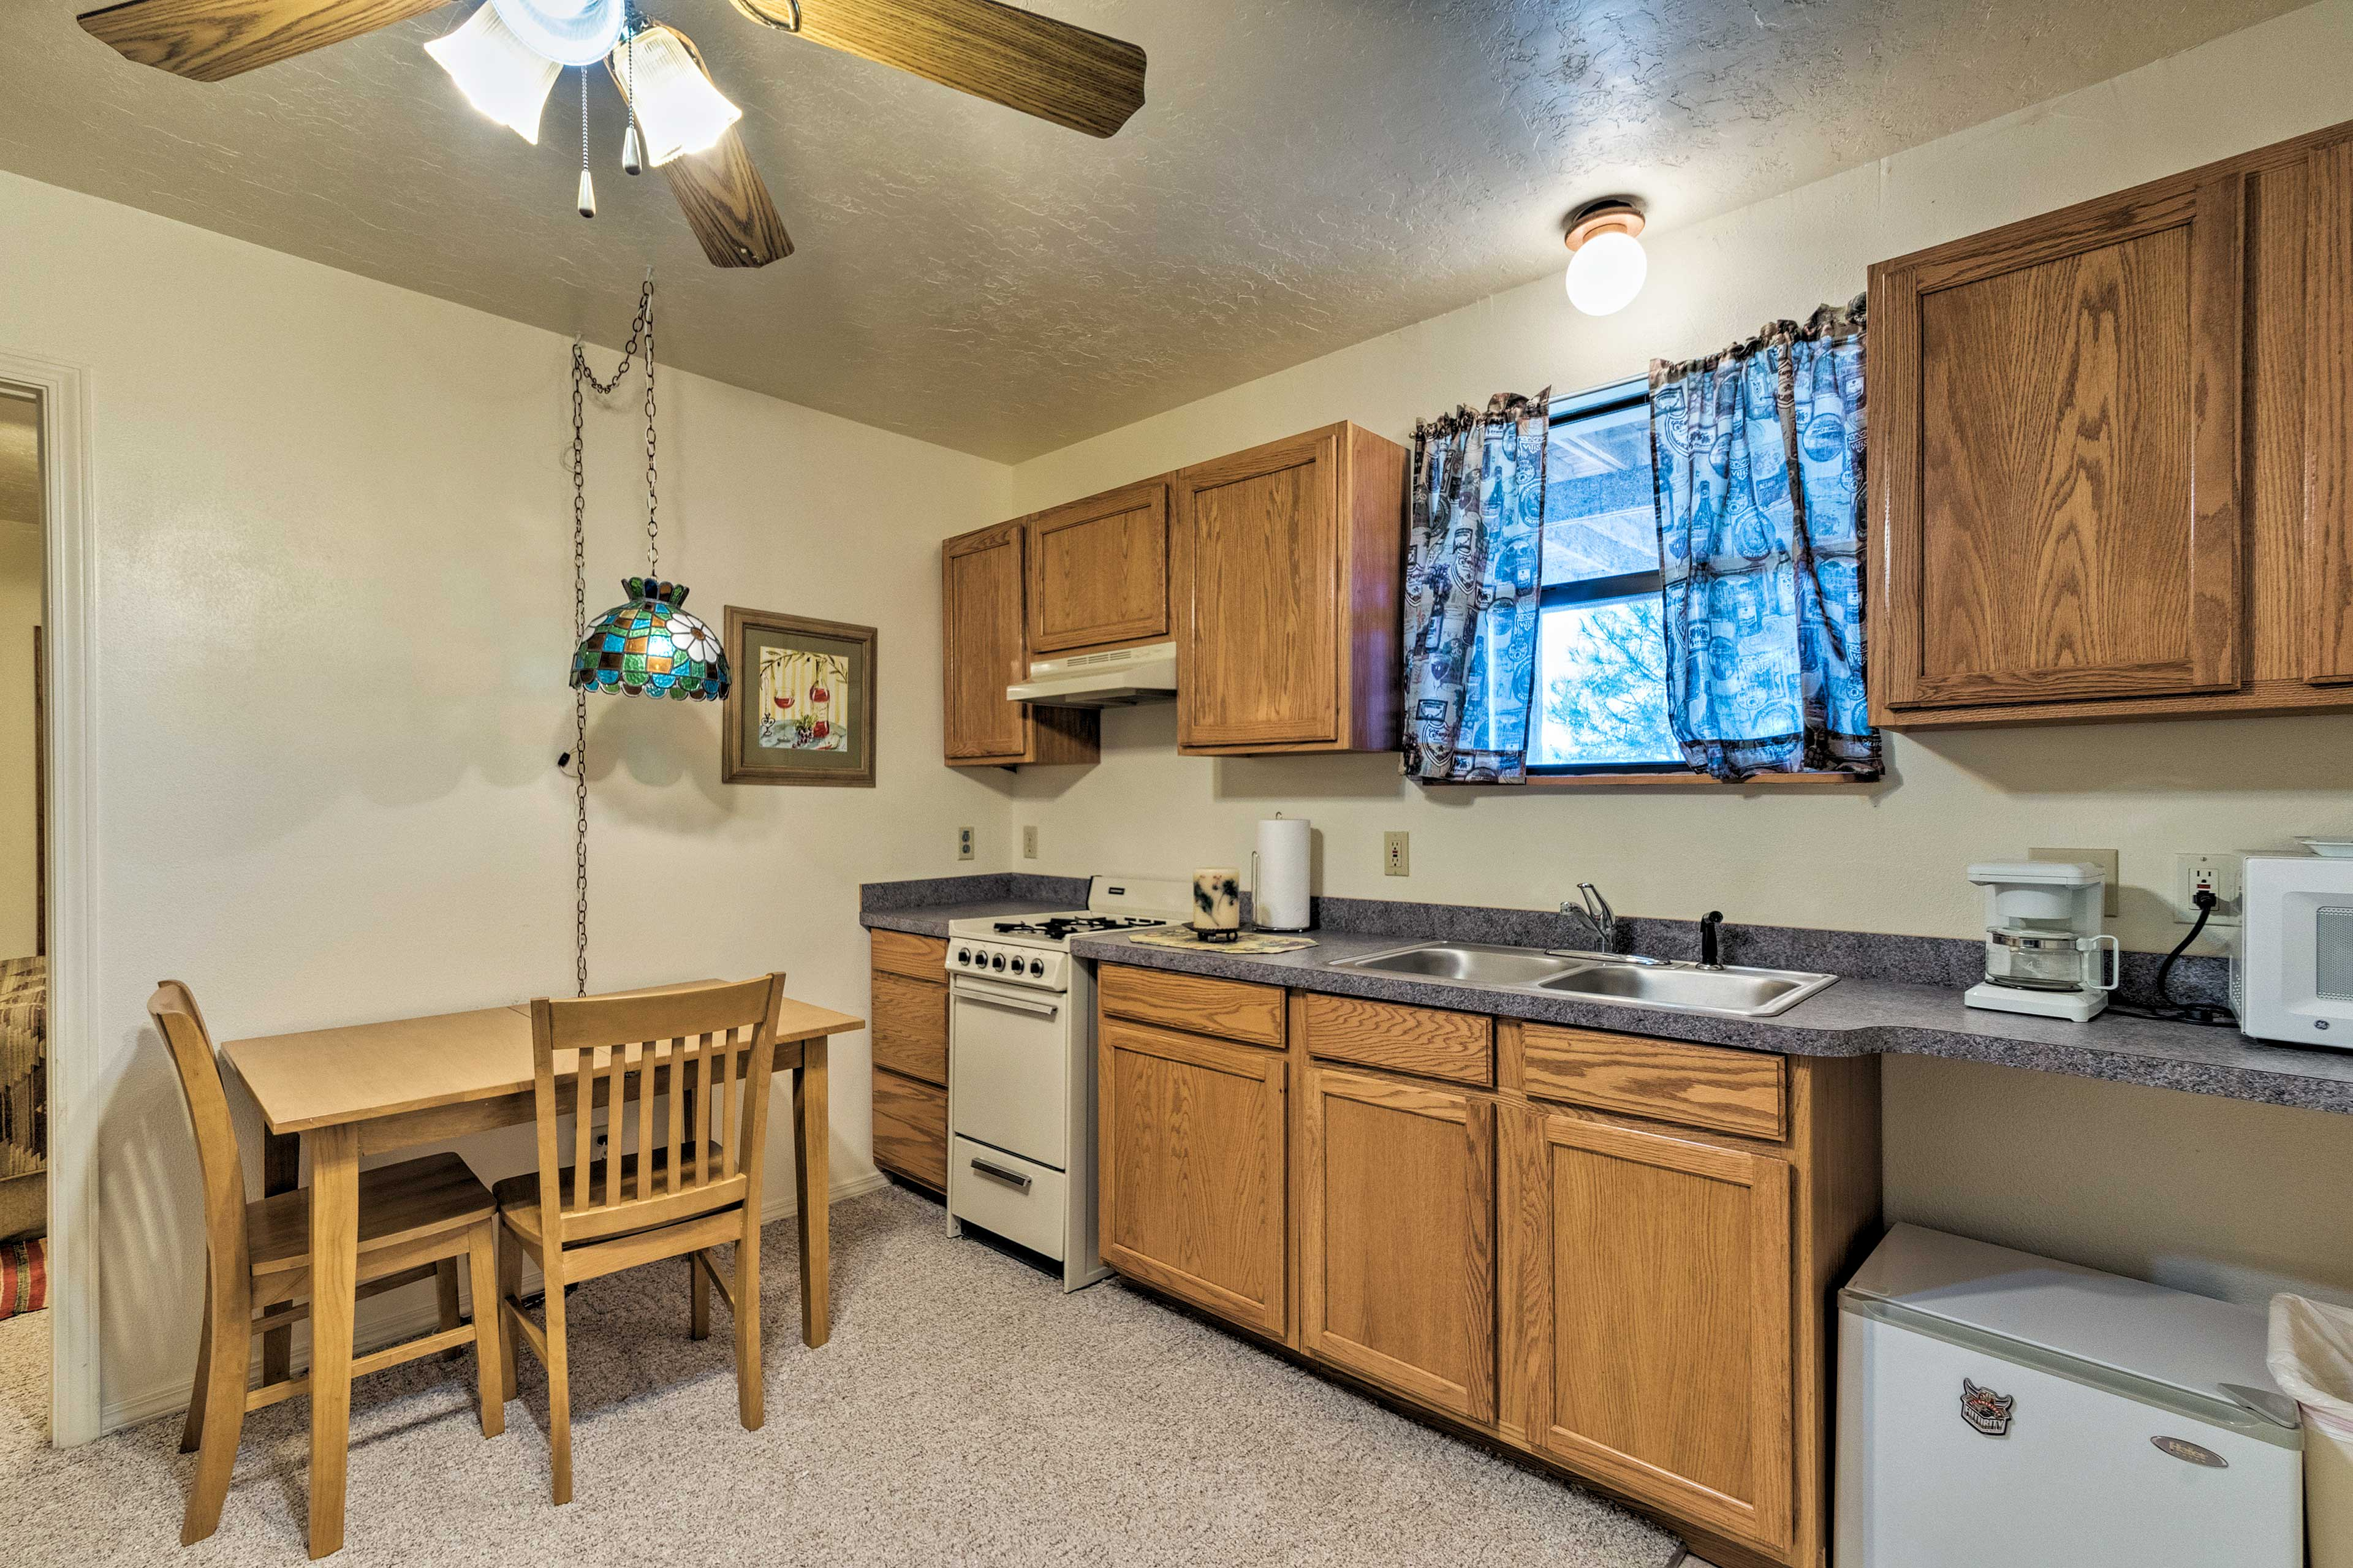 The attached living area hosts a well-equipped kitchen and seating for 2.